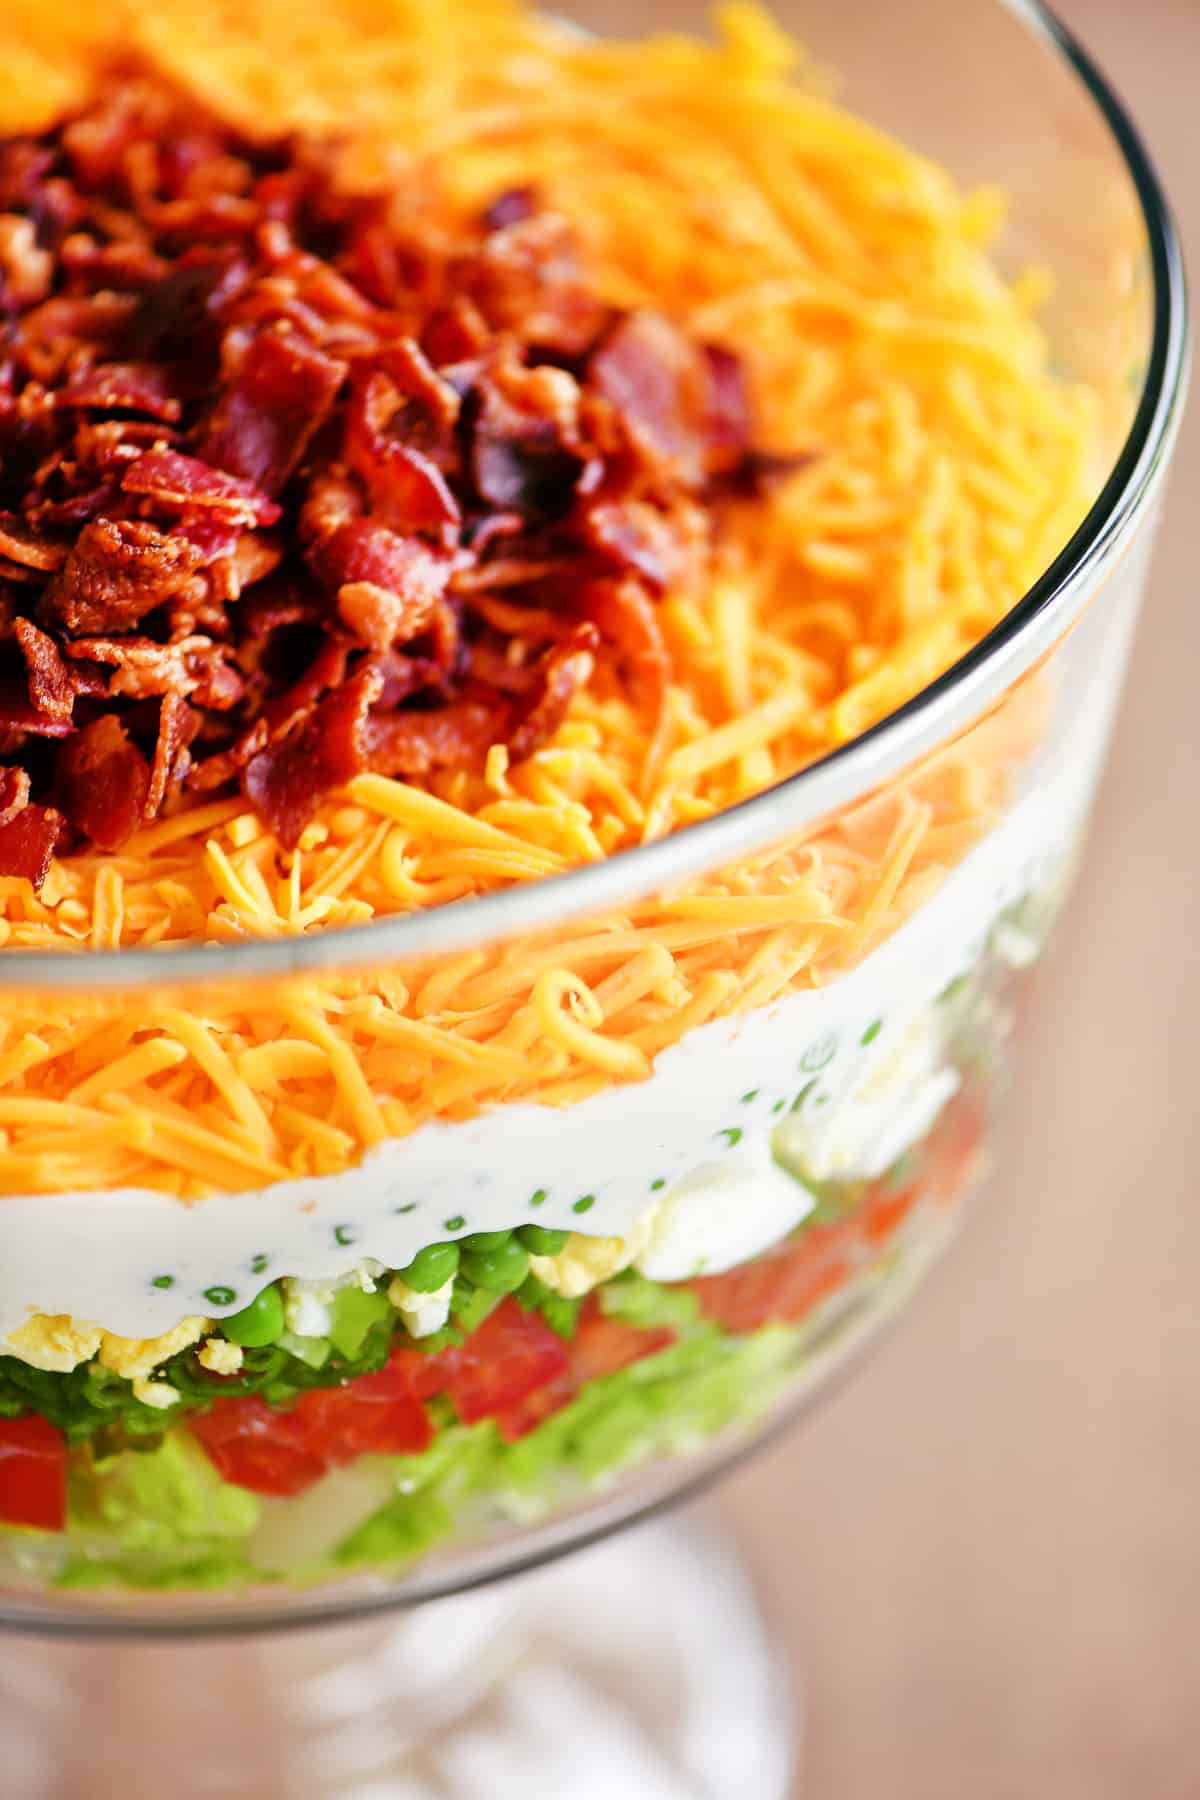 shredded cheddar and bacon on top of salad